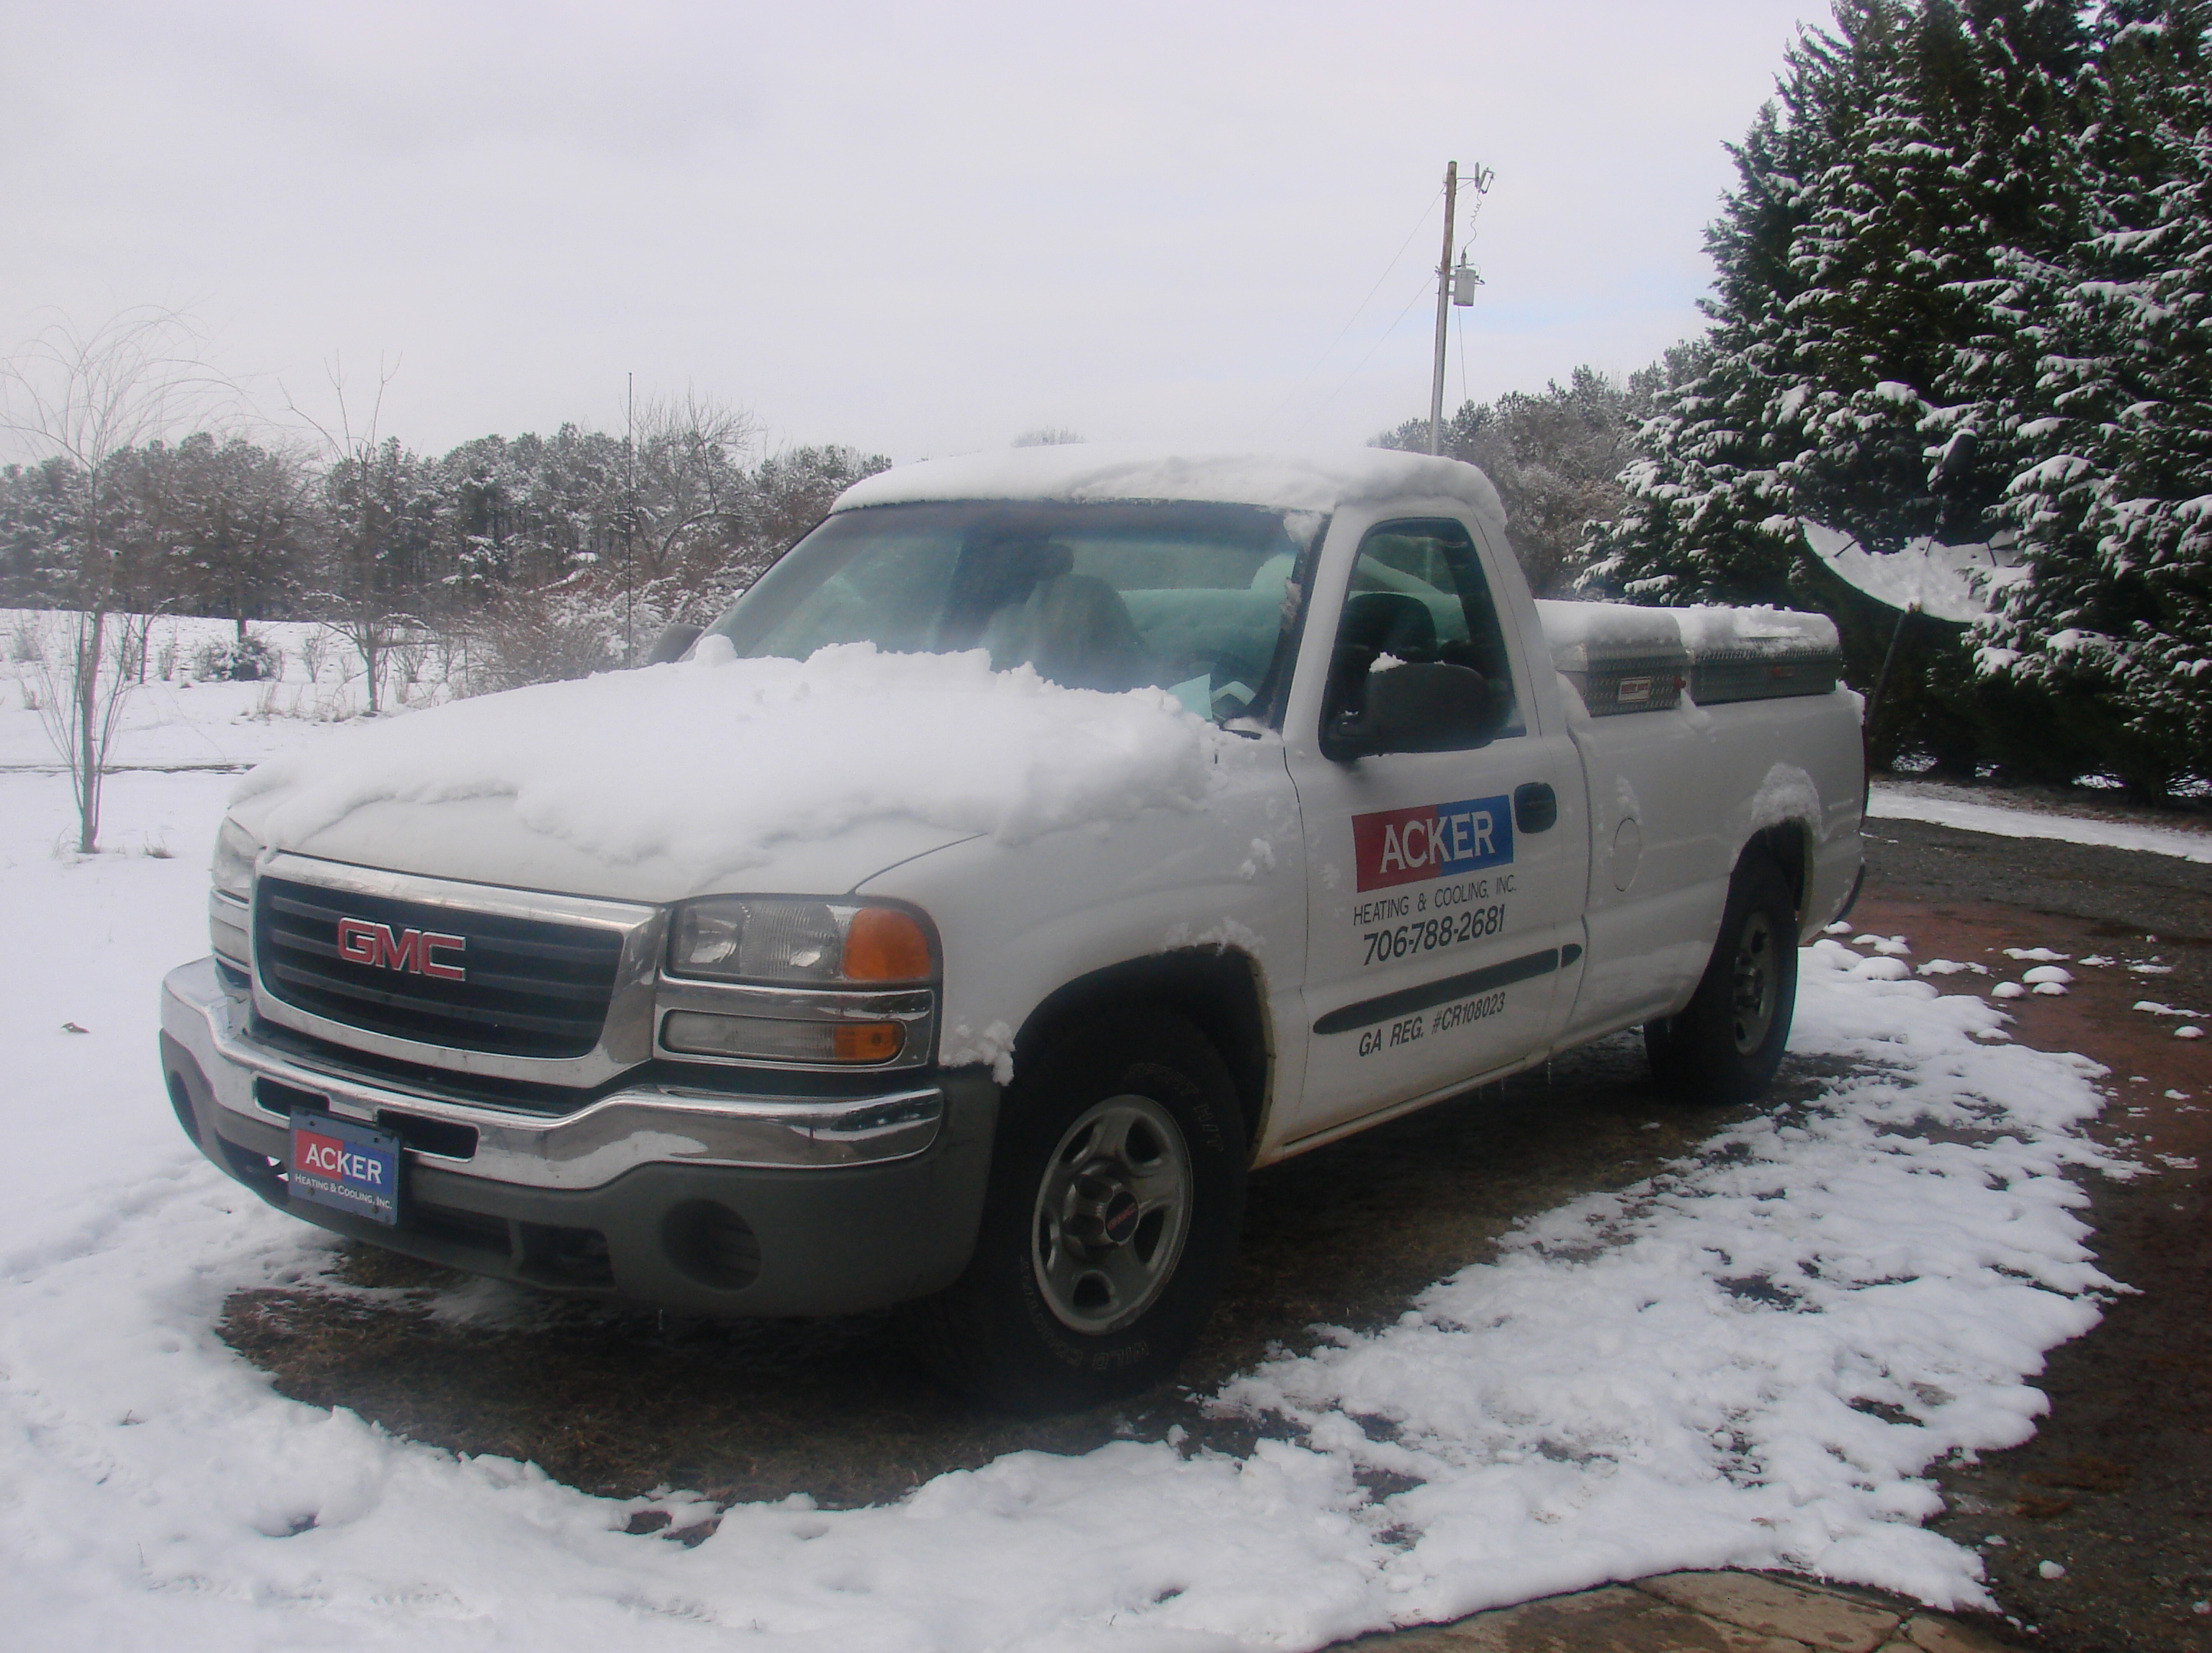 Rain, Sleet, Snow or Shine - the Acker truck is ready to help customers in need!